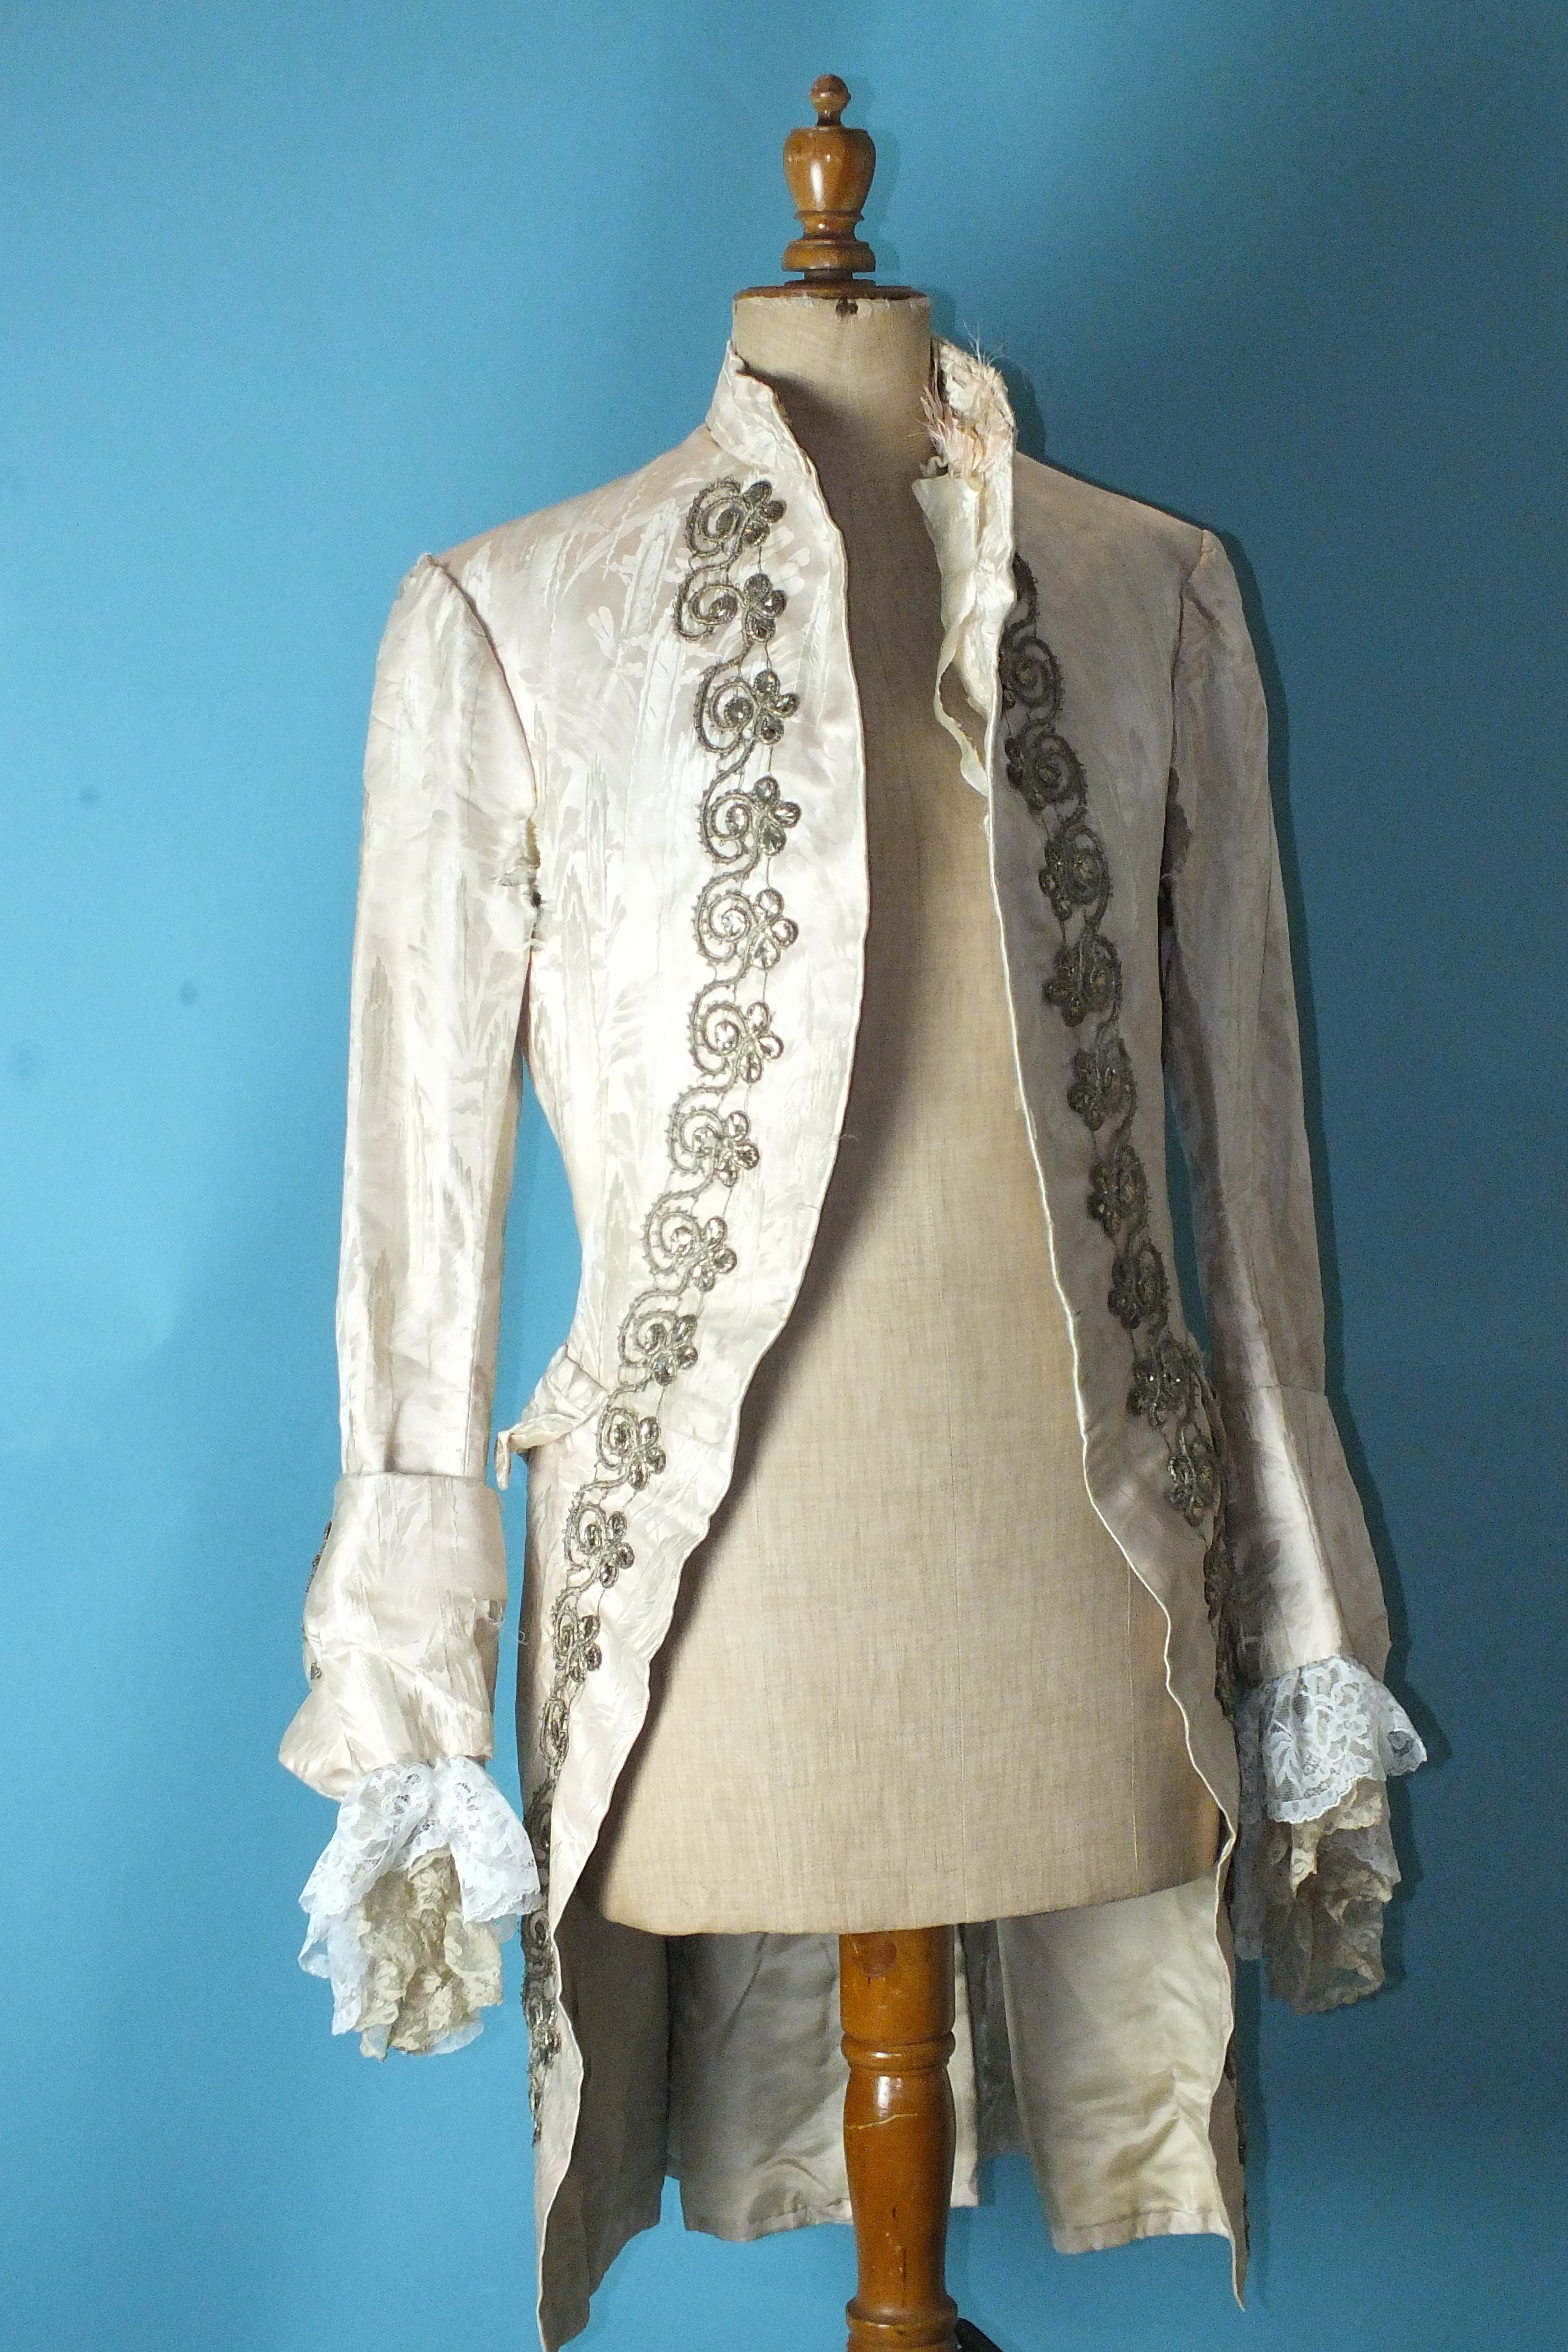 Lot 533 - A late-18th century gentleman's very pale pink silk brocade coat, the front and cuffs embellished